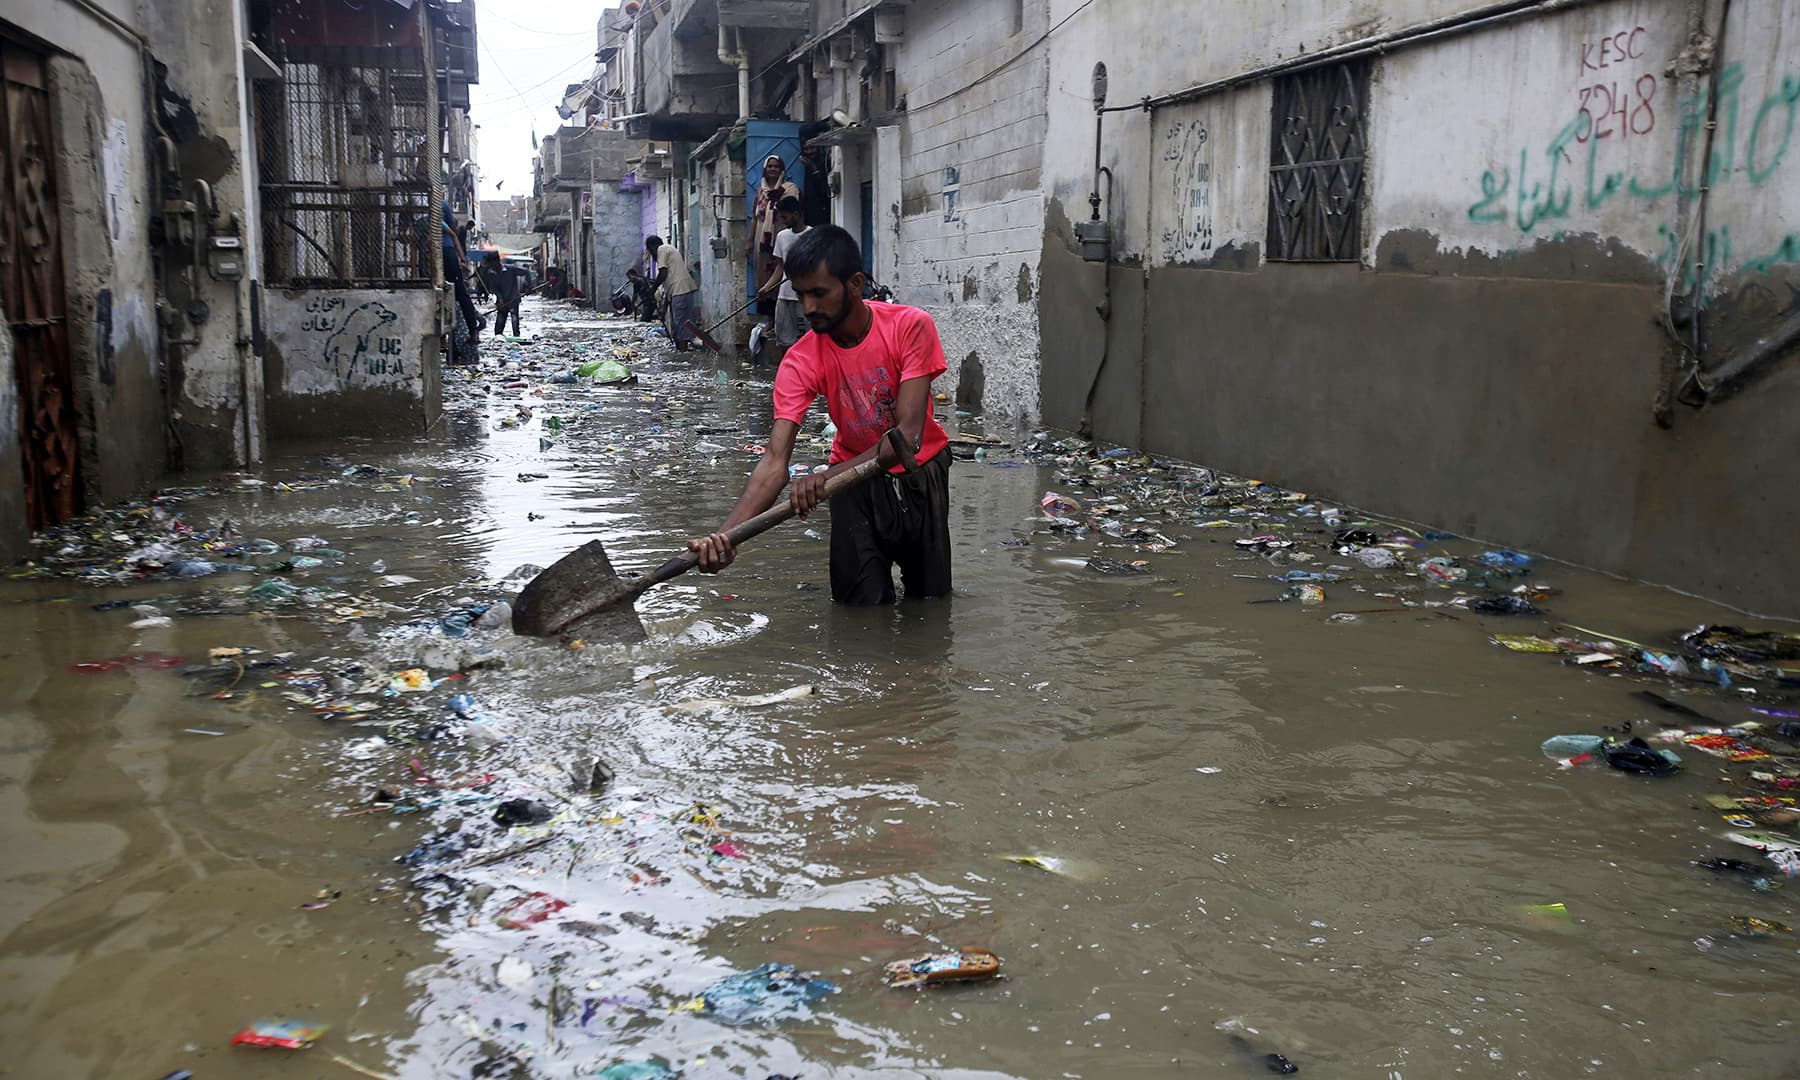 A man cleans a flooded street in Karachi on Tuesday. — AP